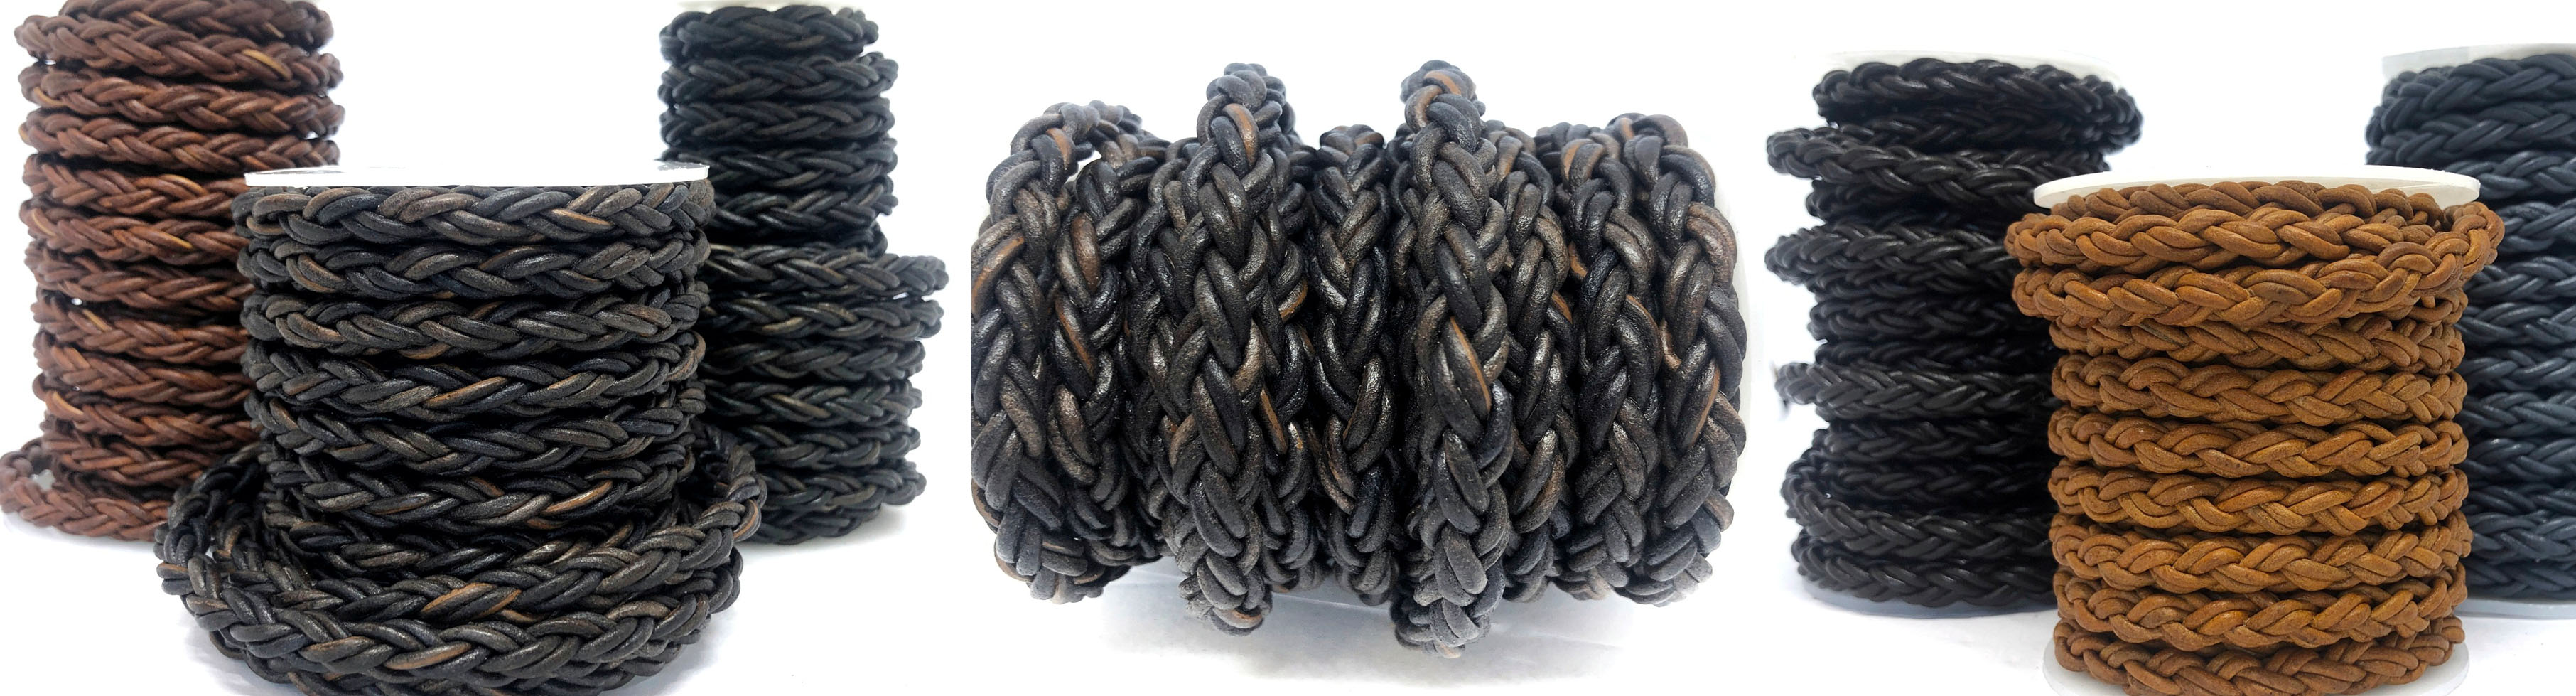 Buy Leather Cord Braided Leather Round 8mm Round Bolo Twist Leather Cord  at wholesale prices